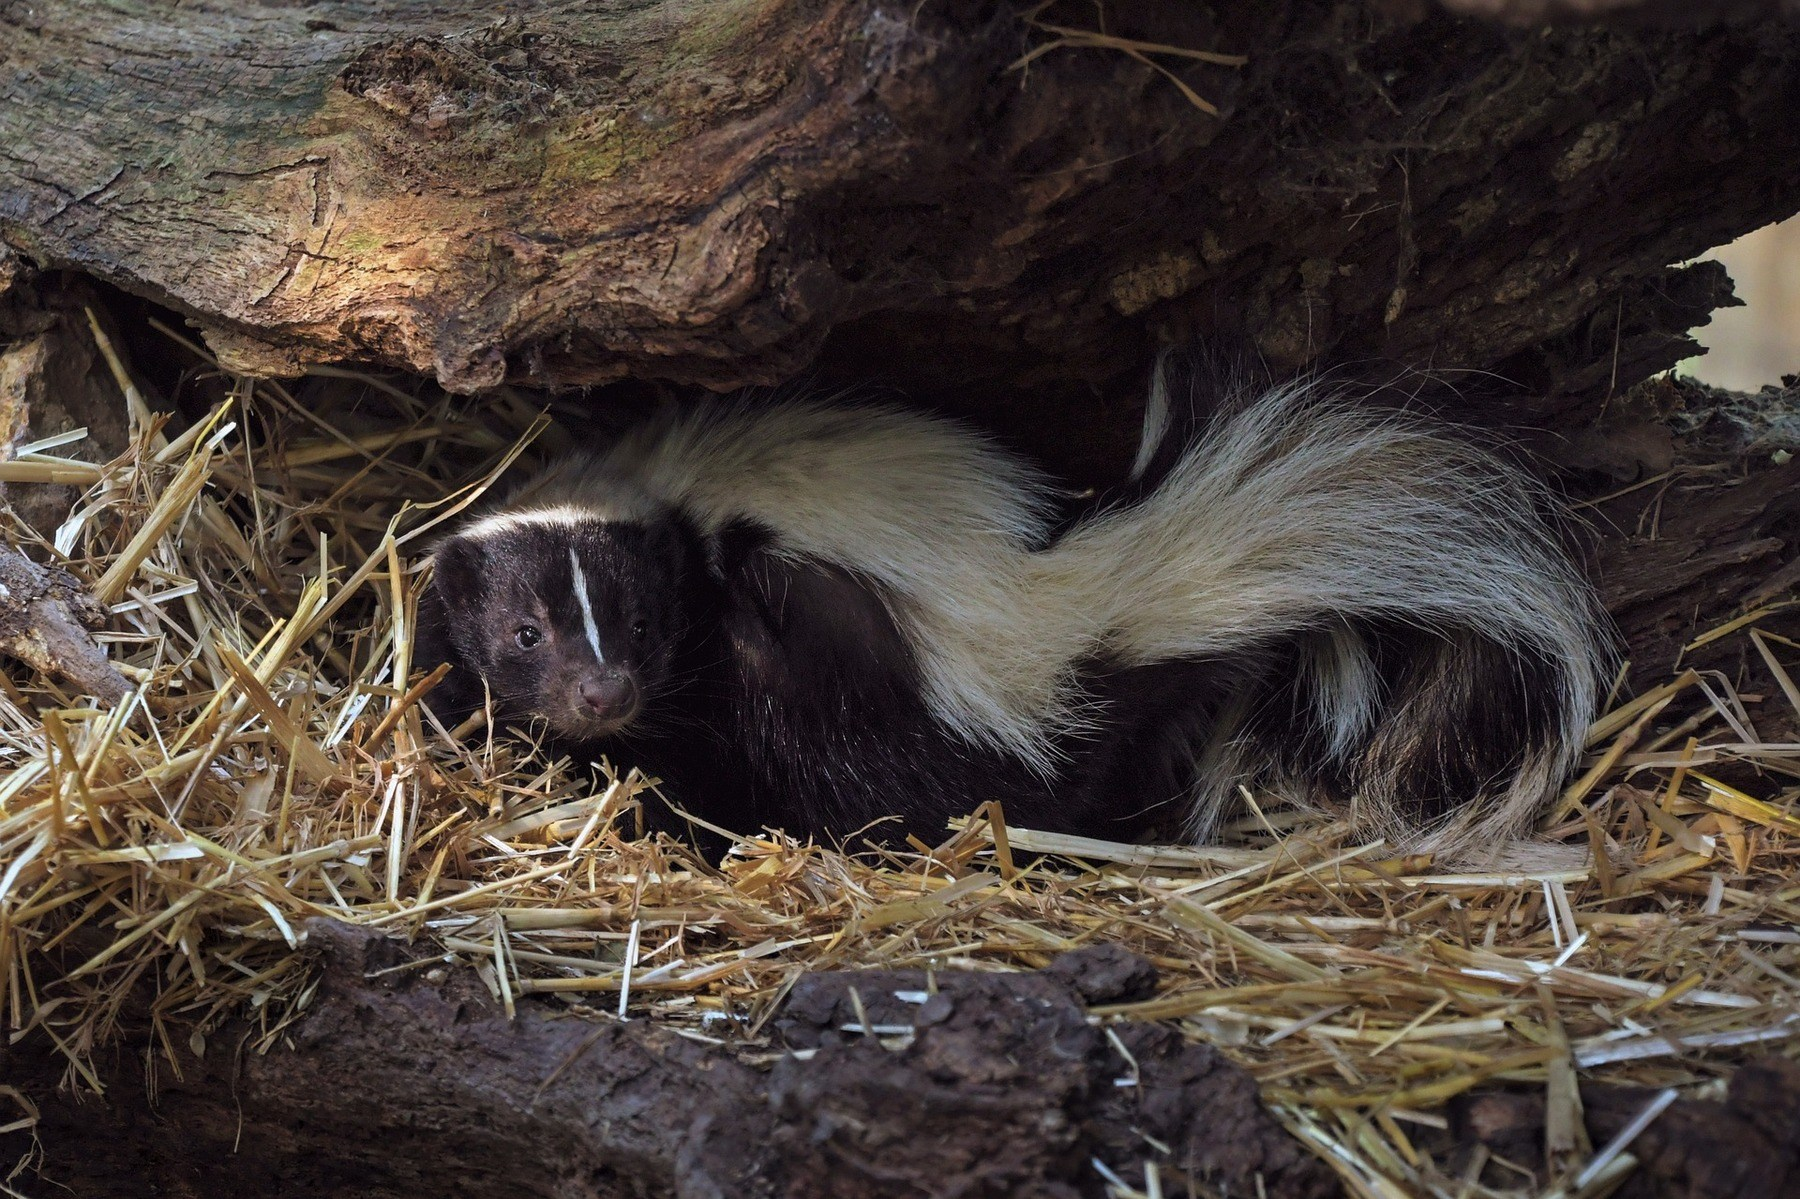 Skunk in a cave